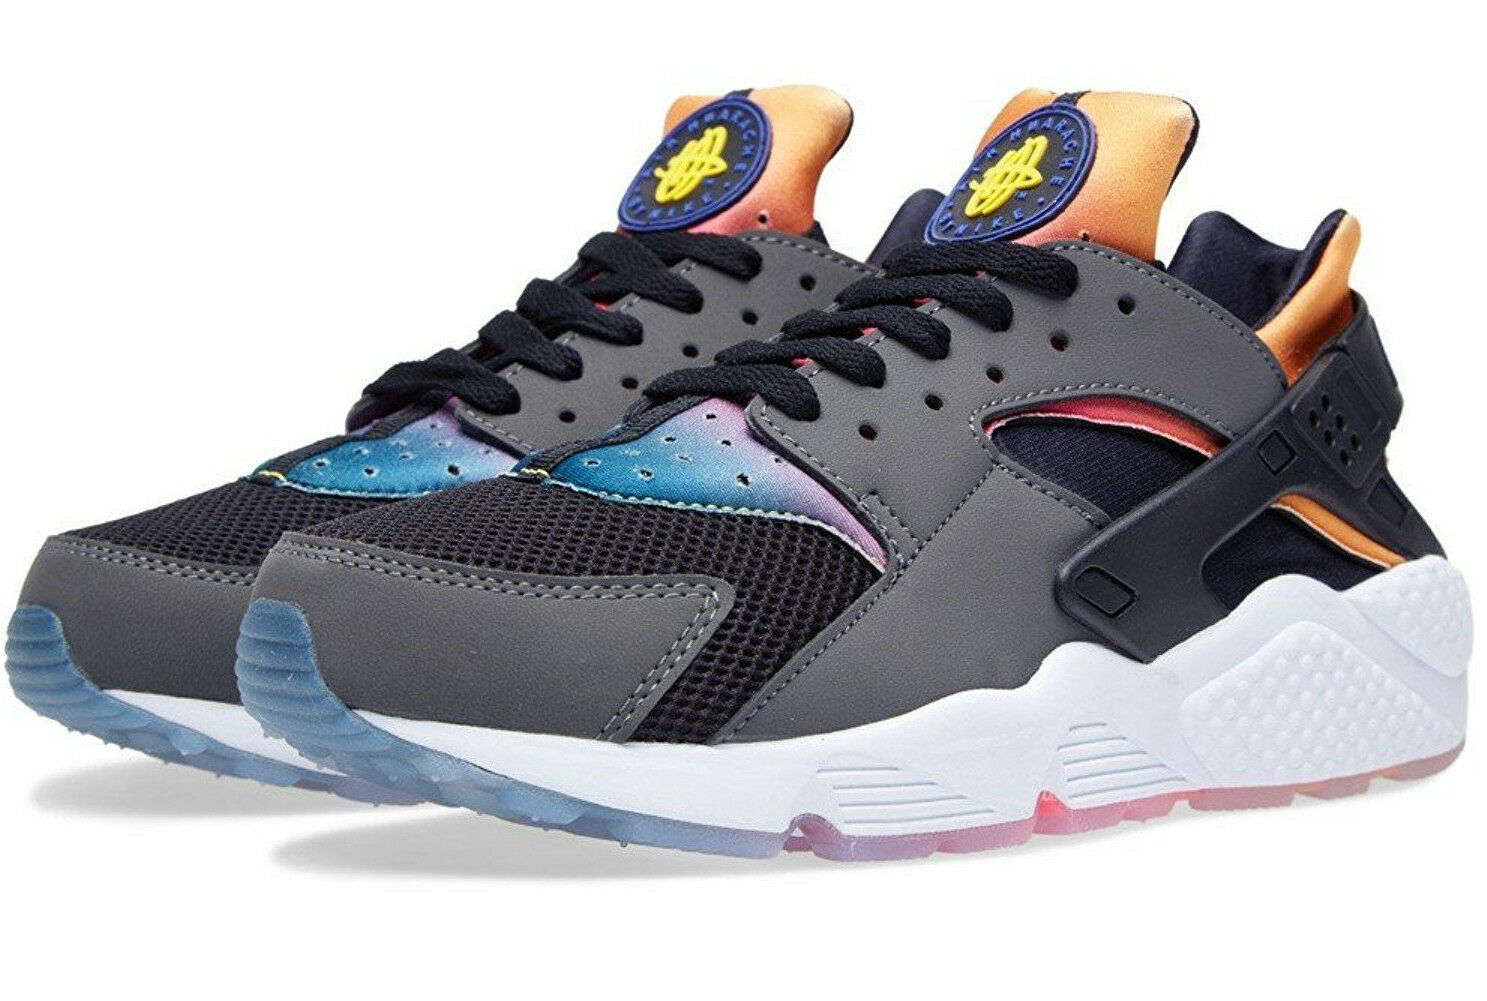 NIKE Air Huarache Run SD Price reduction Cheap women's shoes women's shoes